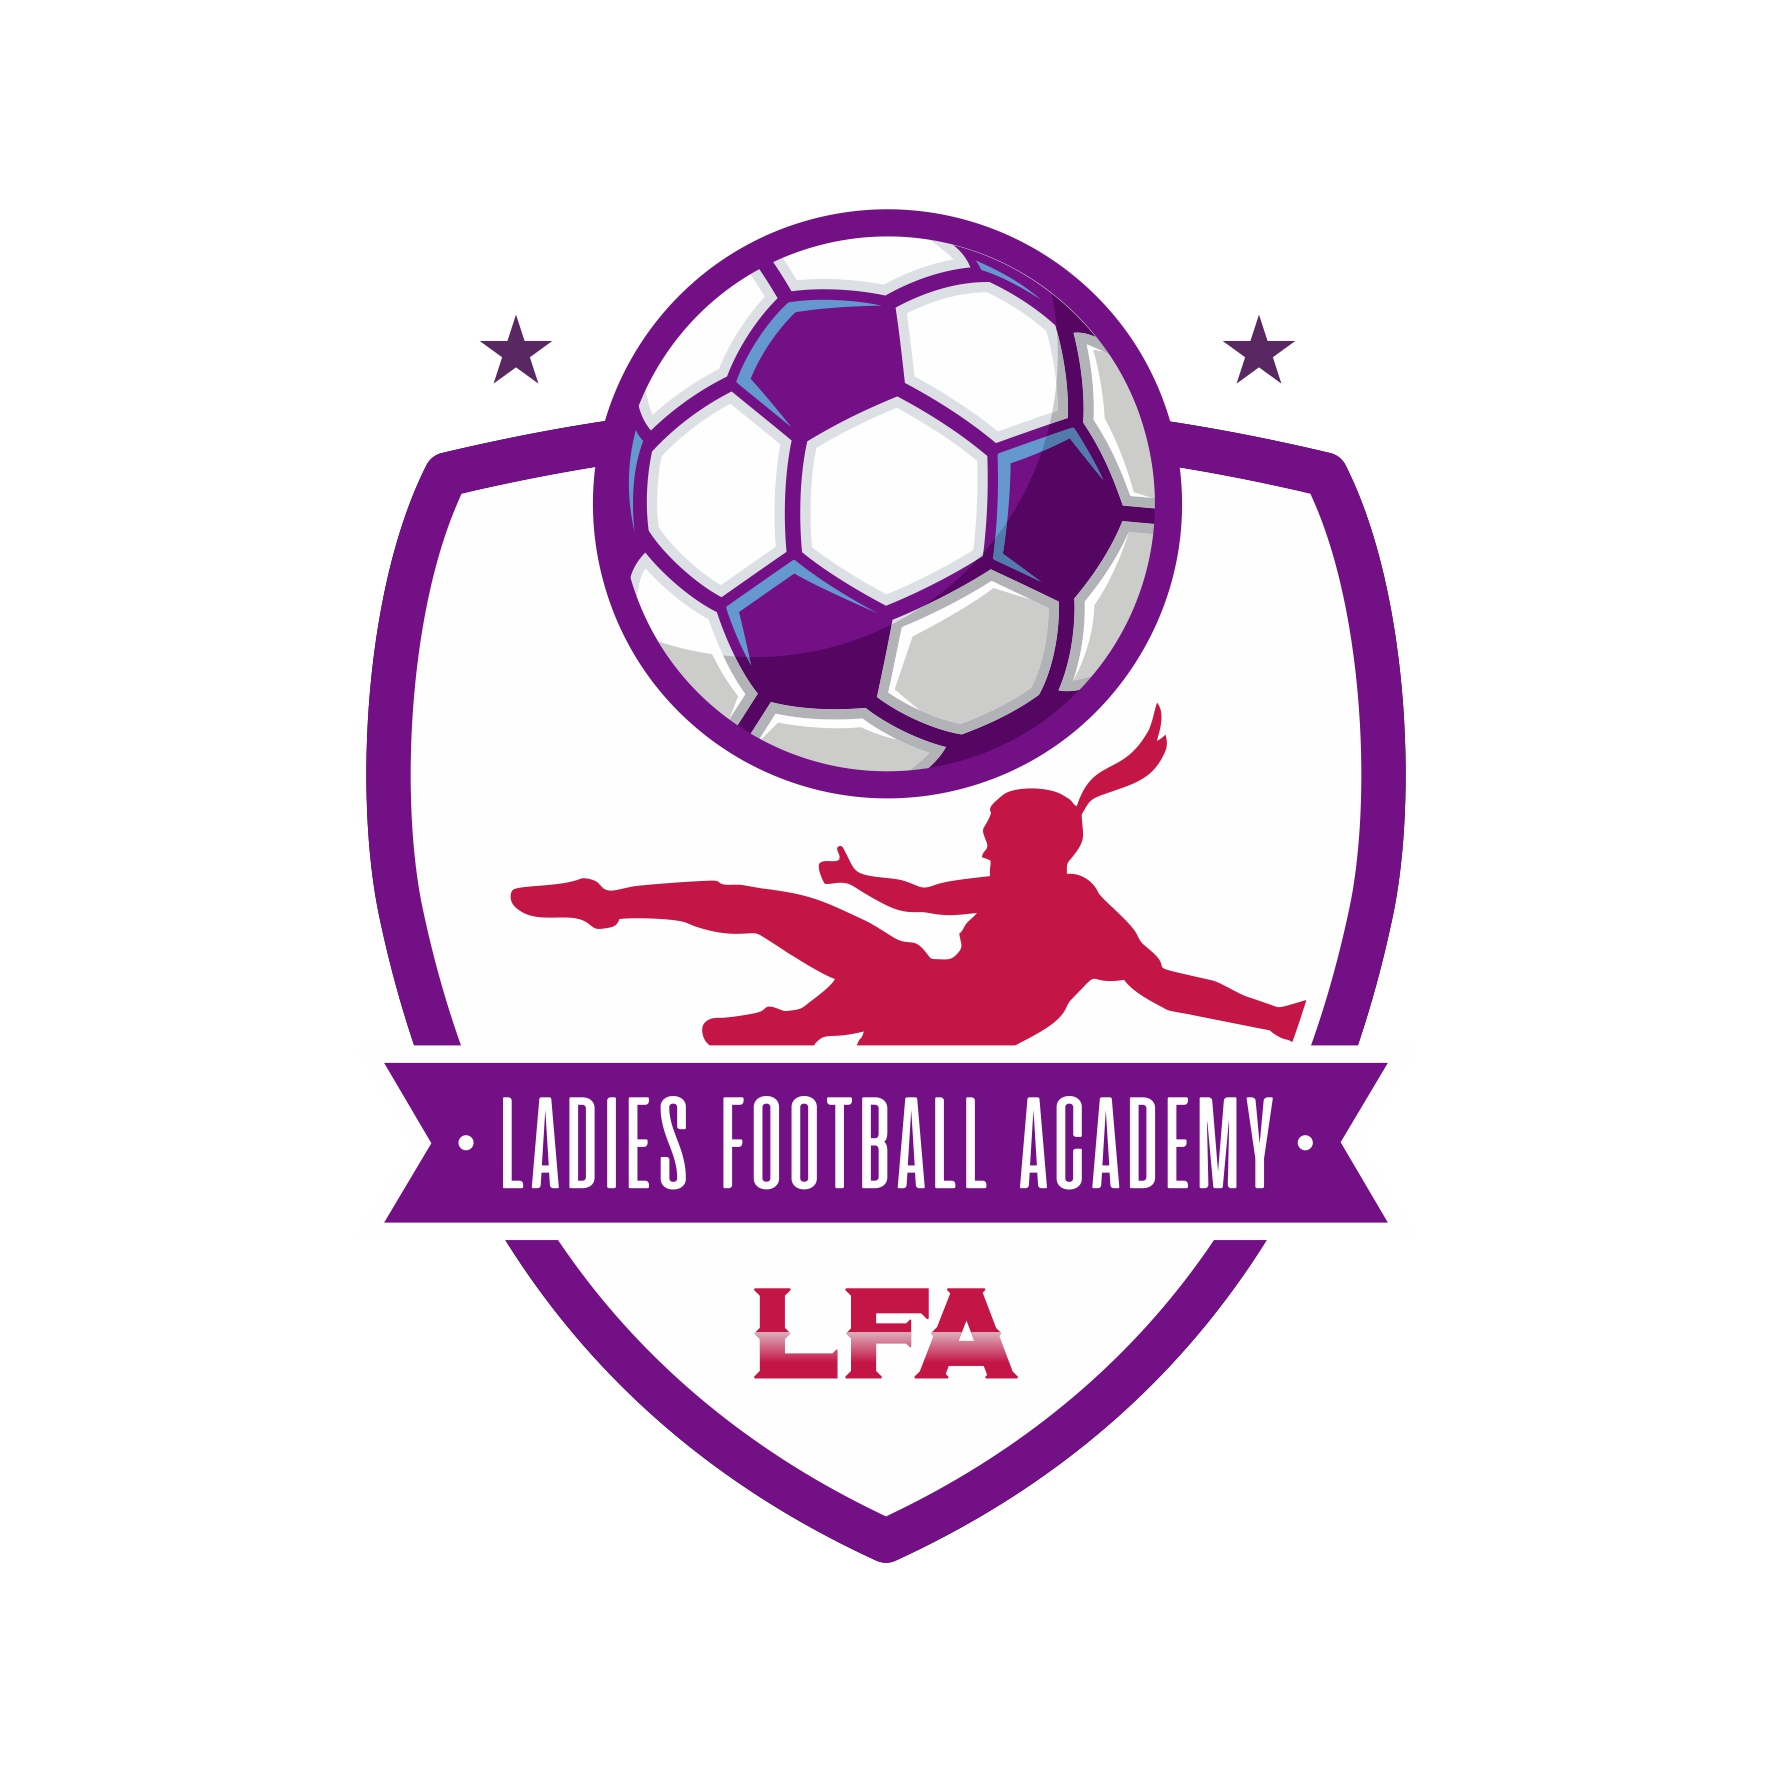 Ladies Football Academy Szczecin